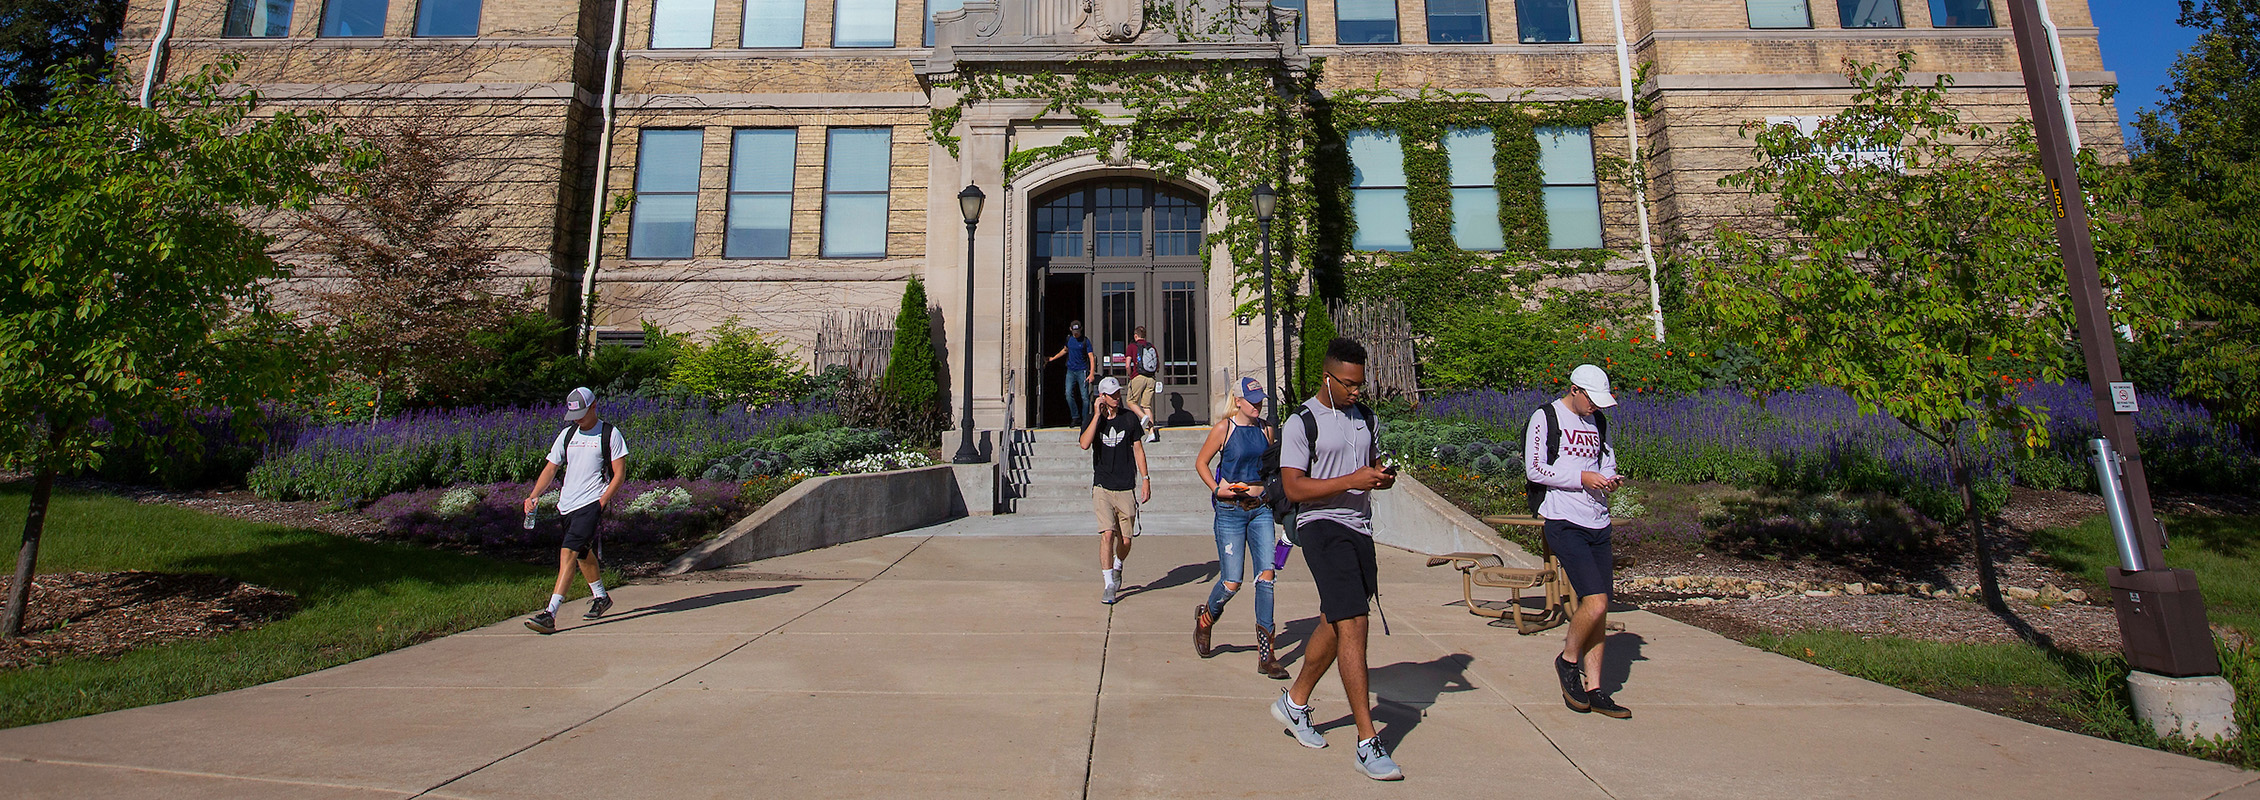 UW-Whitewater students enrolling in classes